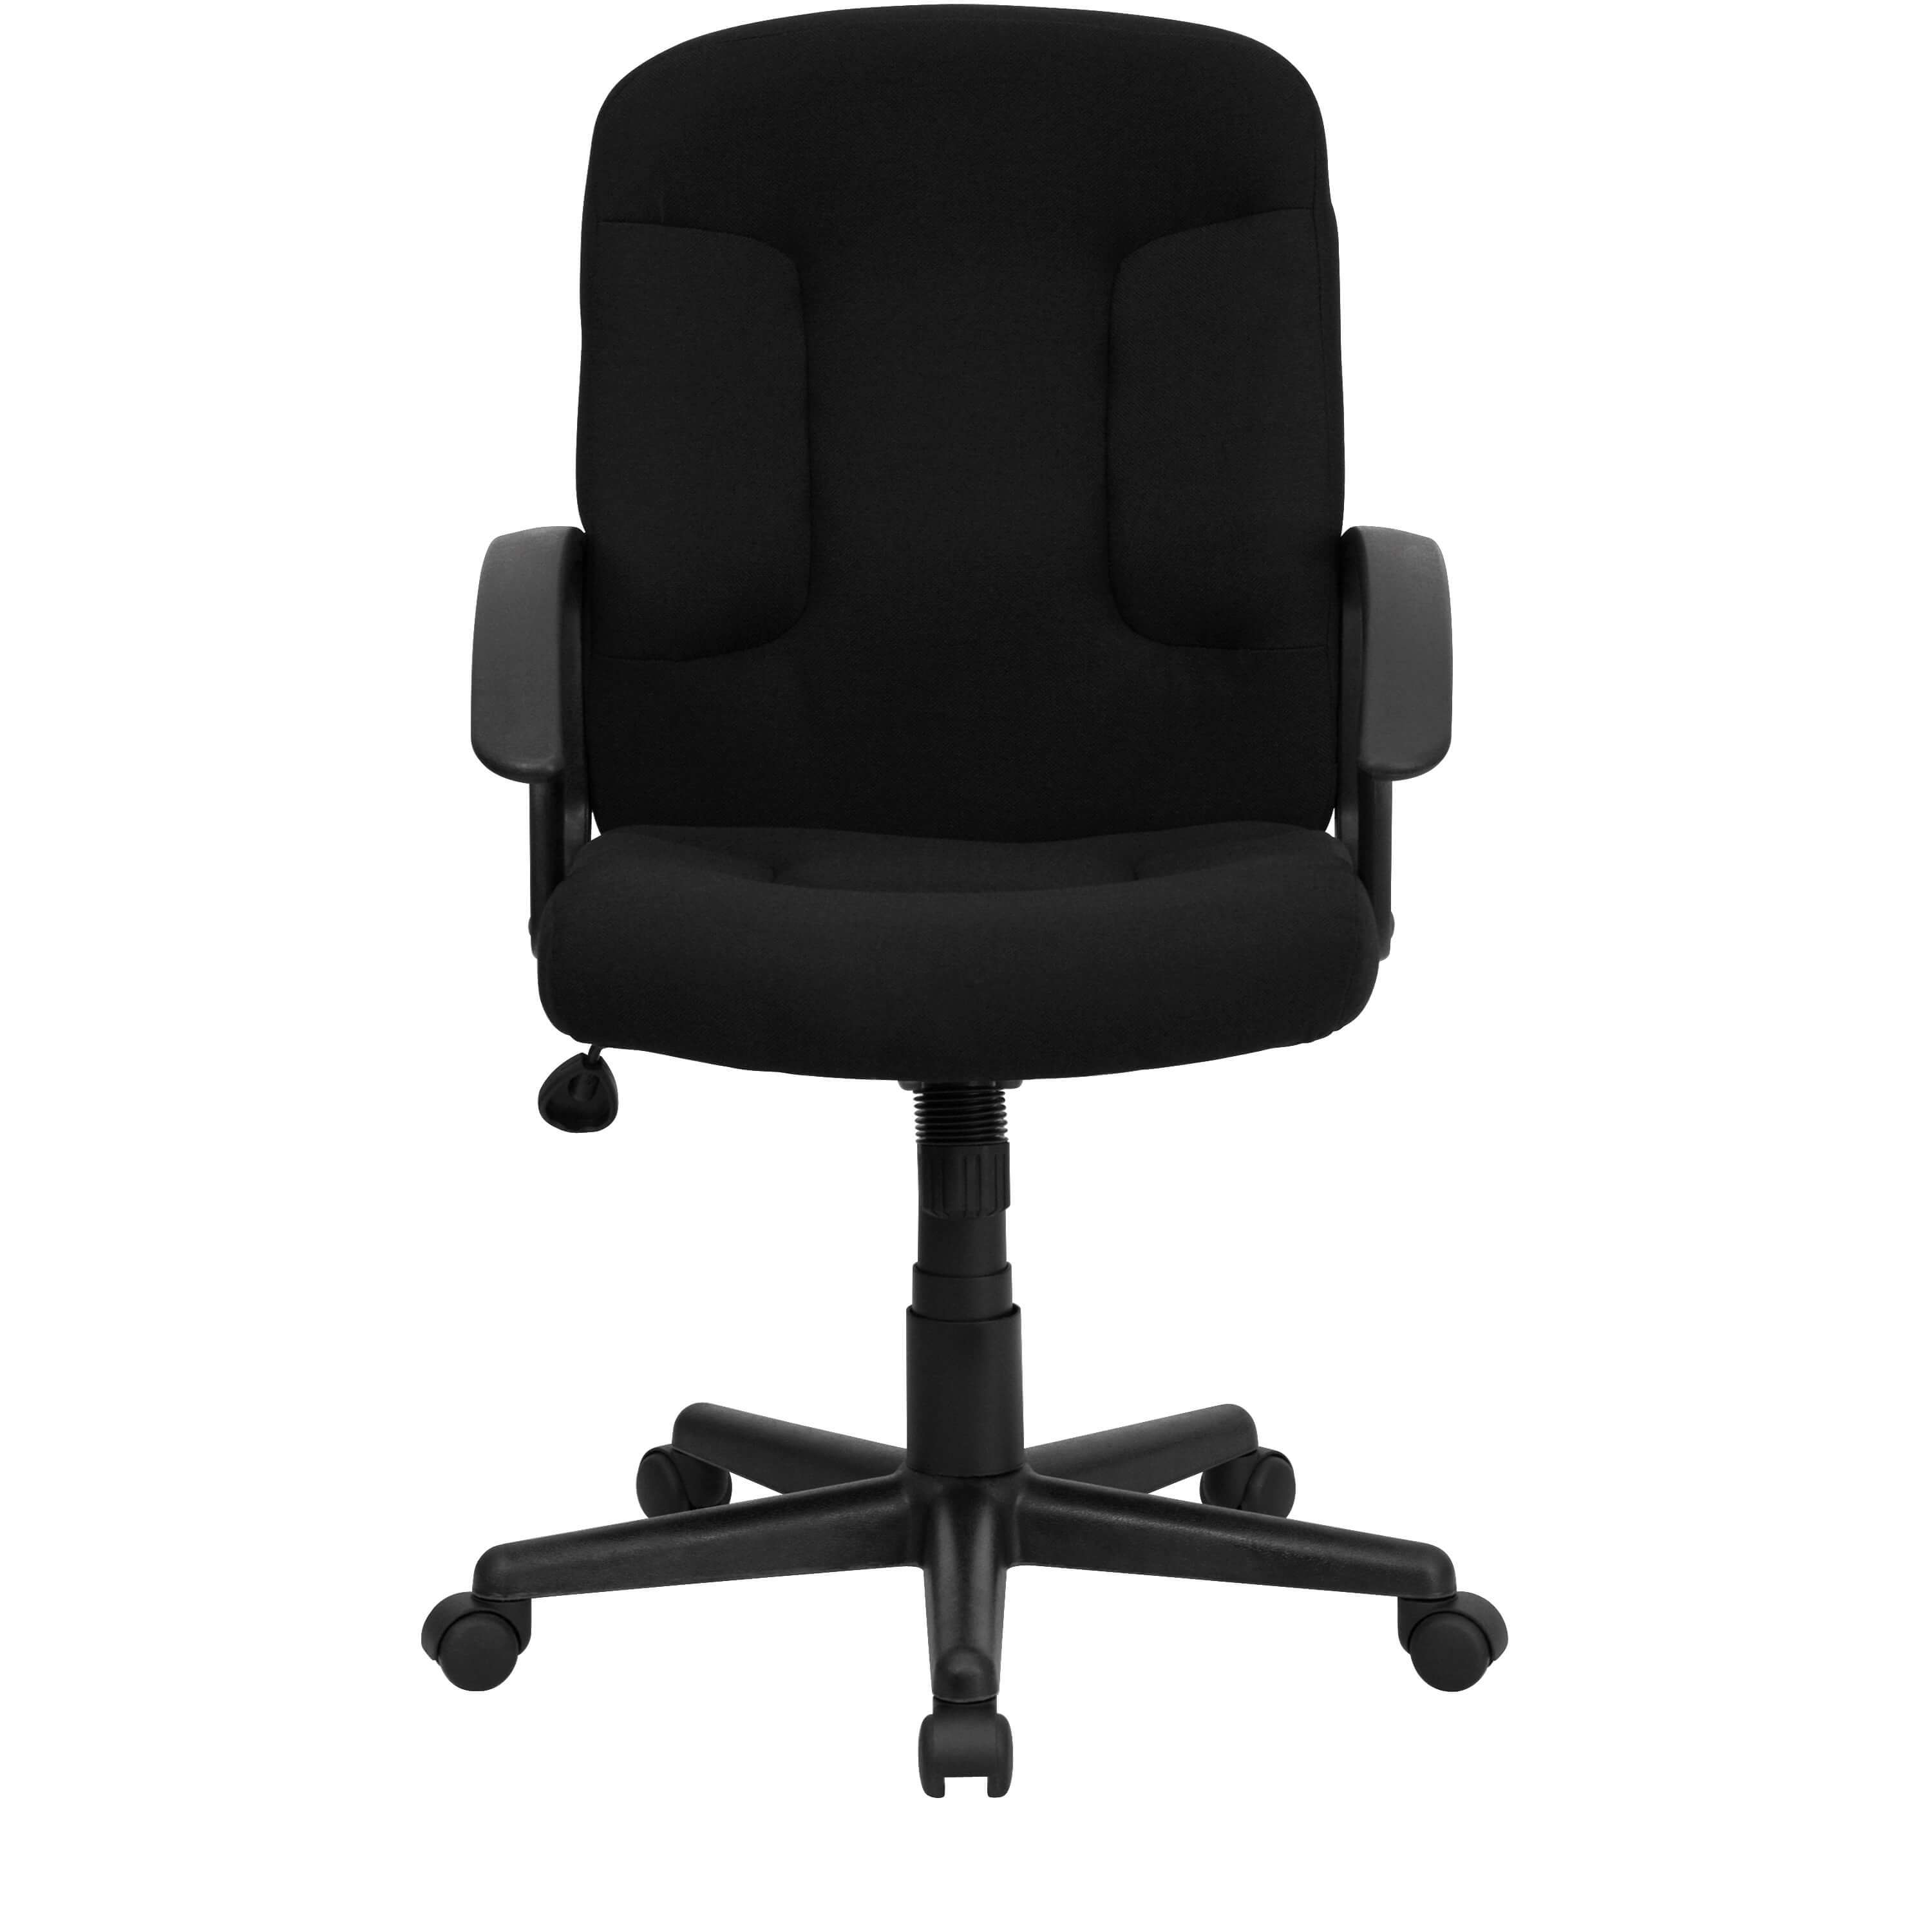 Electra Upholstered Desk Chair